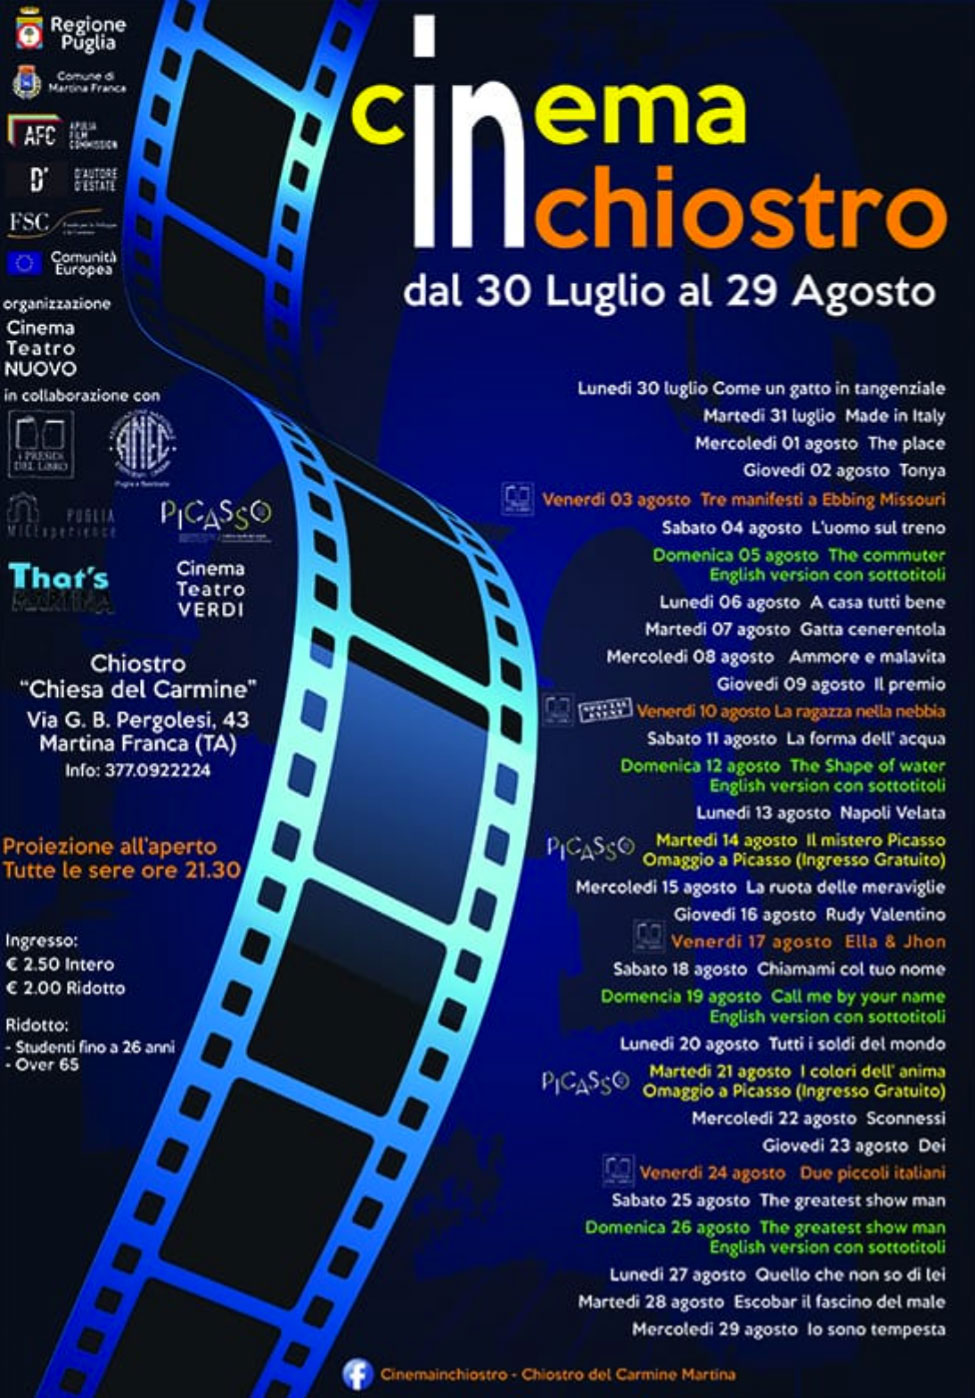 Cinema Inchiostro